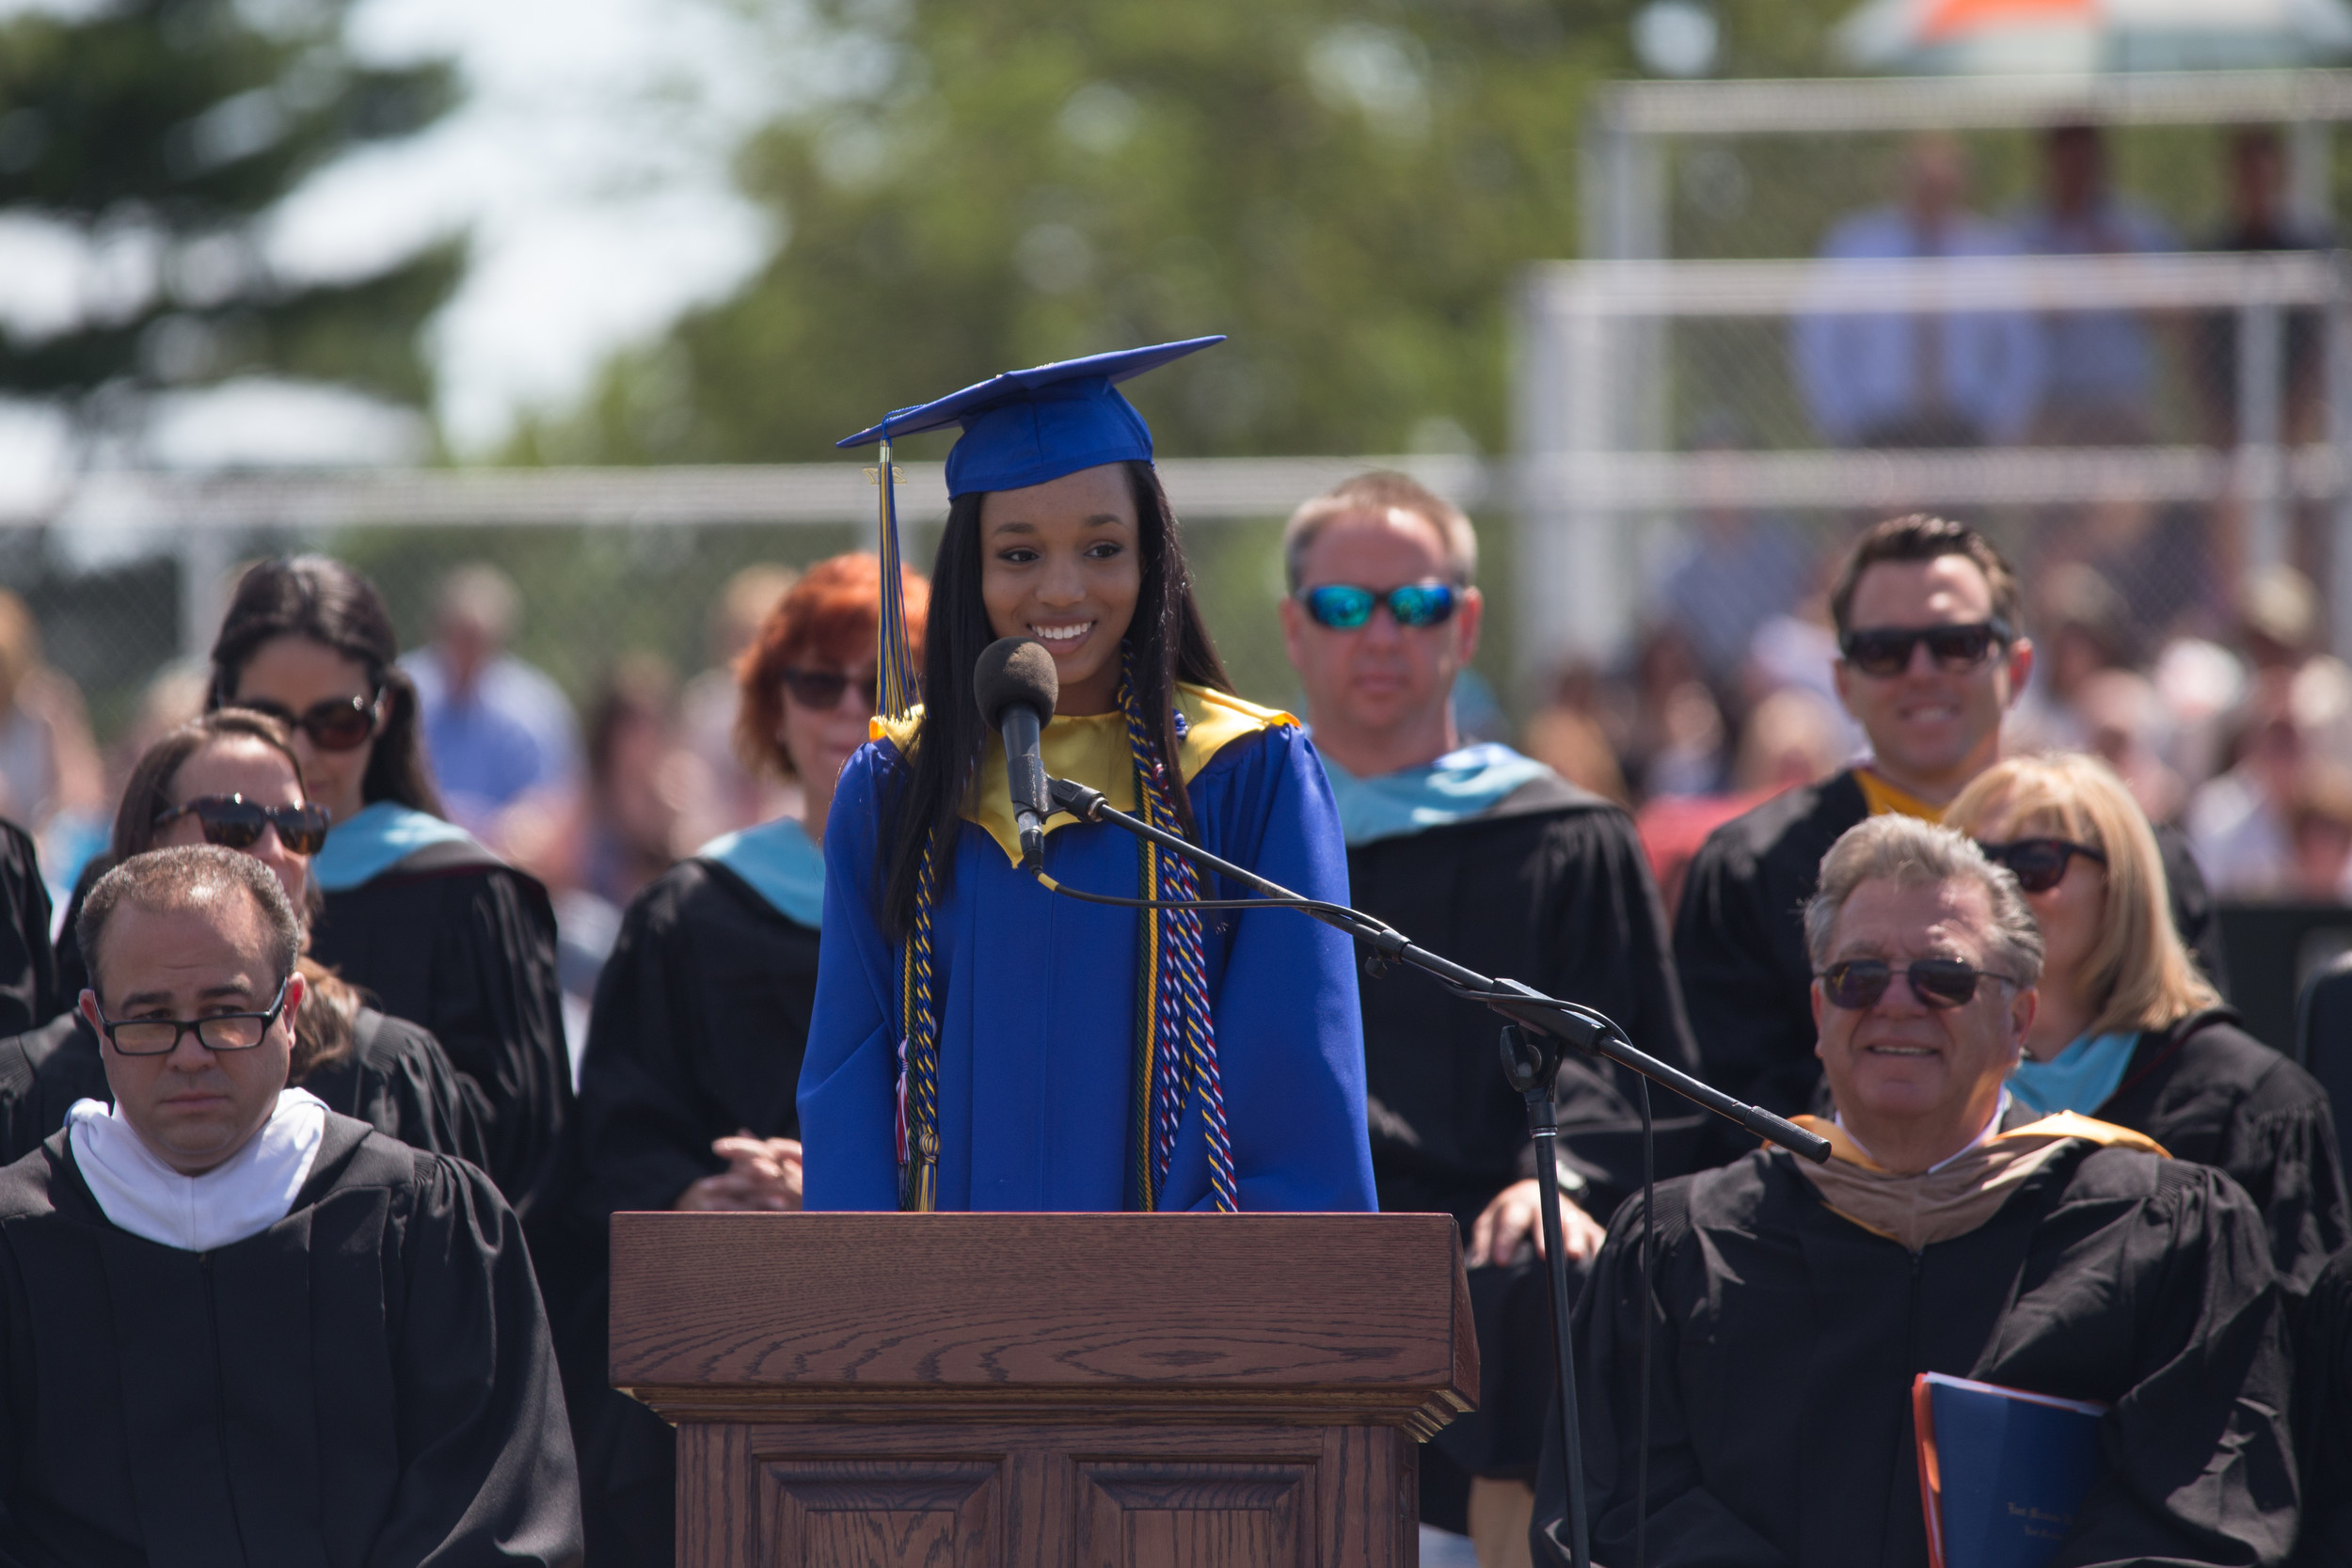 As her peers cheered her on, East Meadow High School's valedictorian Mahalia Mathelier smiled at the crowd.